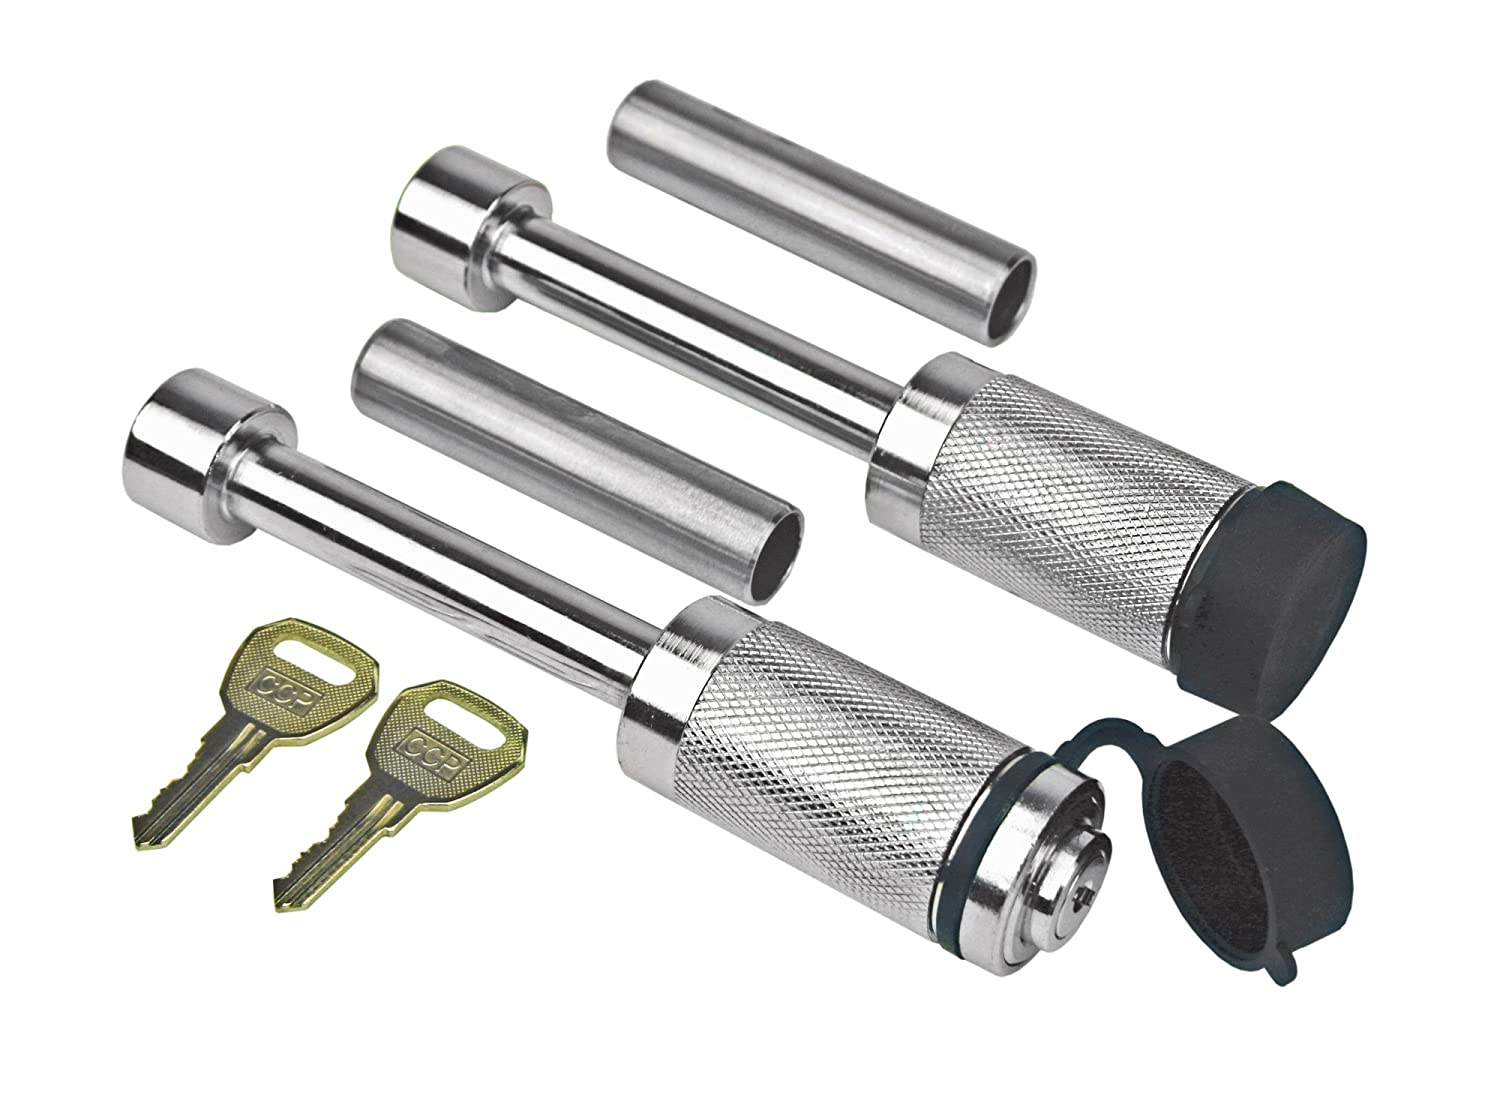 Reese Towpower 7023900 Security Lock Set, (Pack of 2)